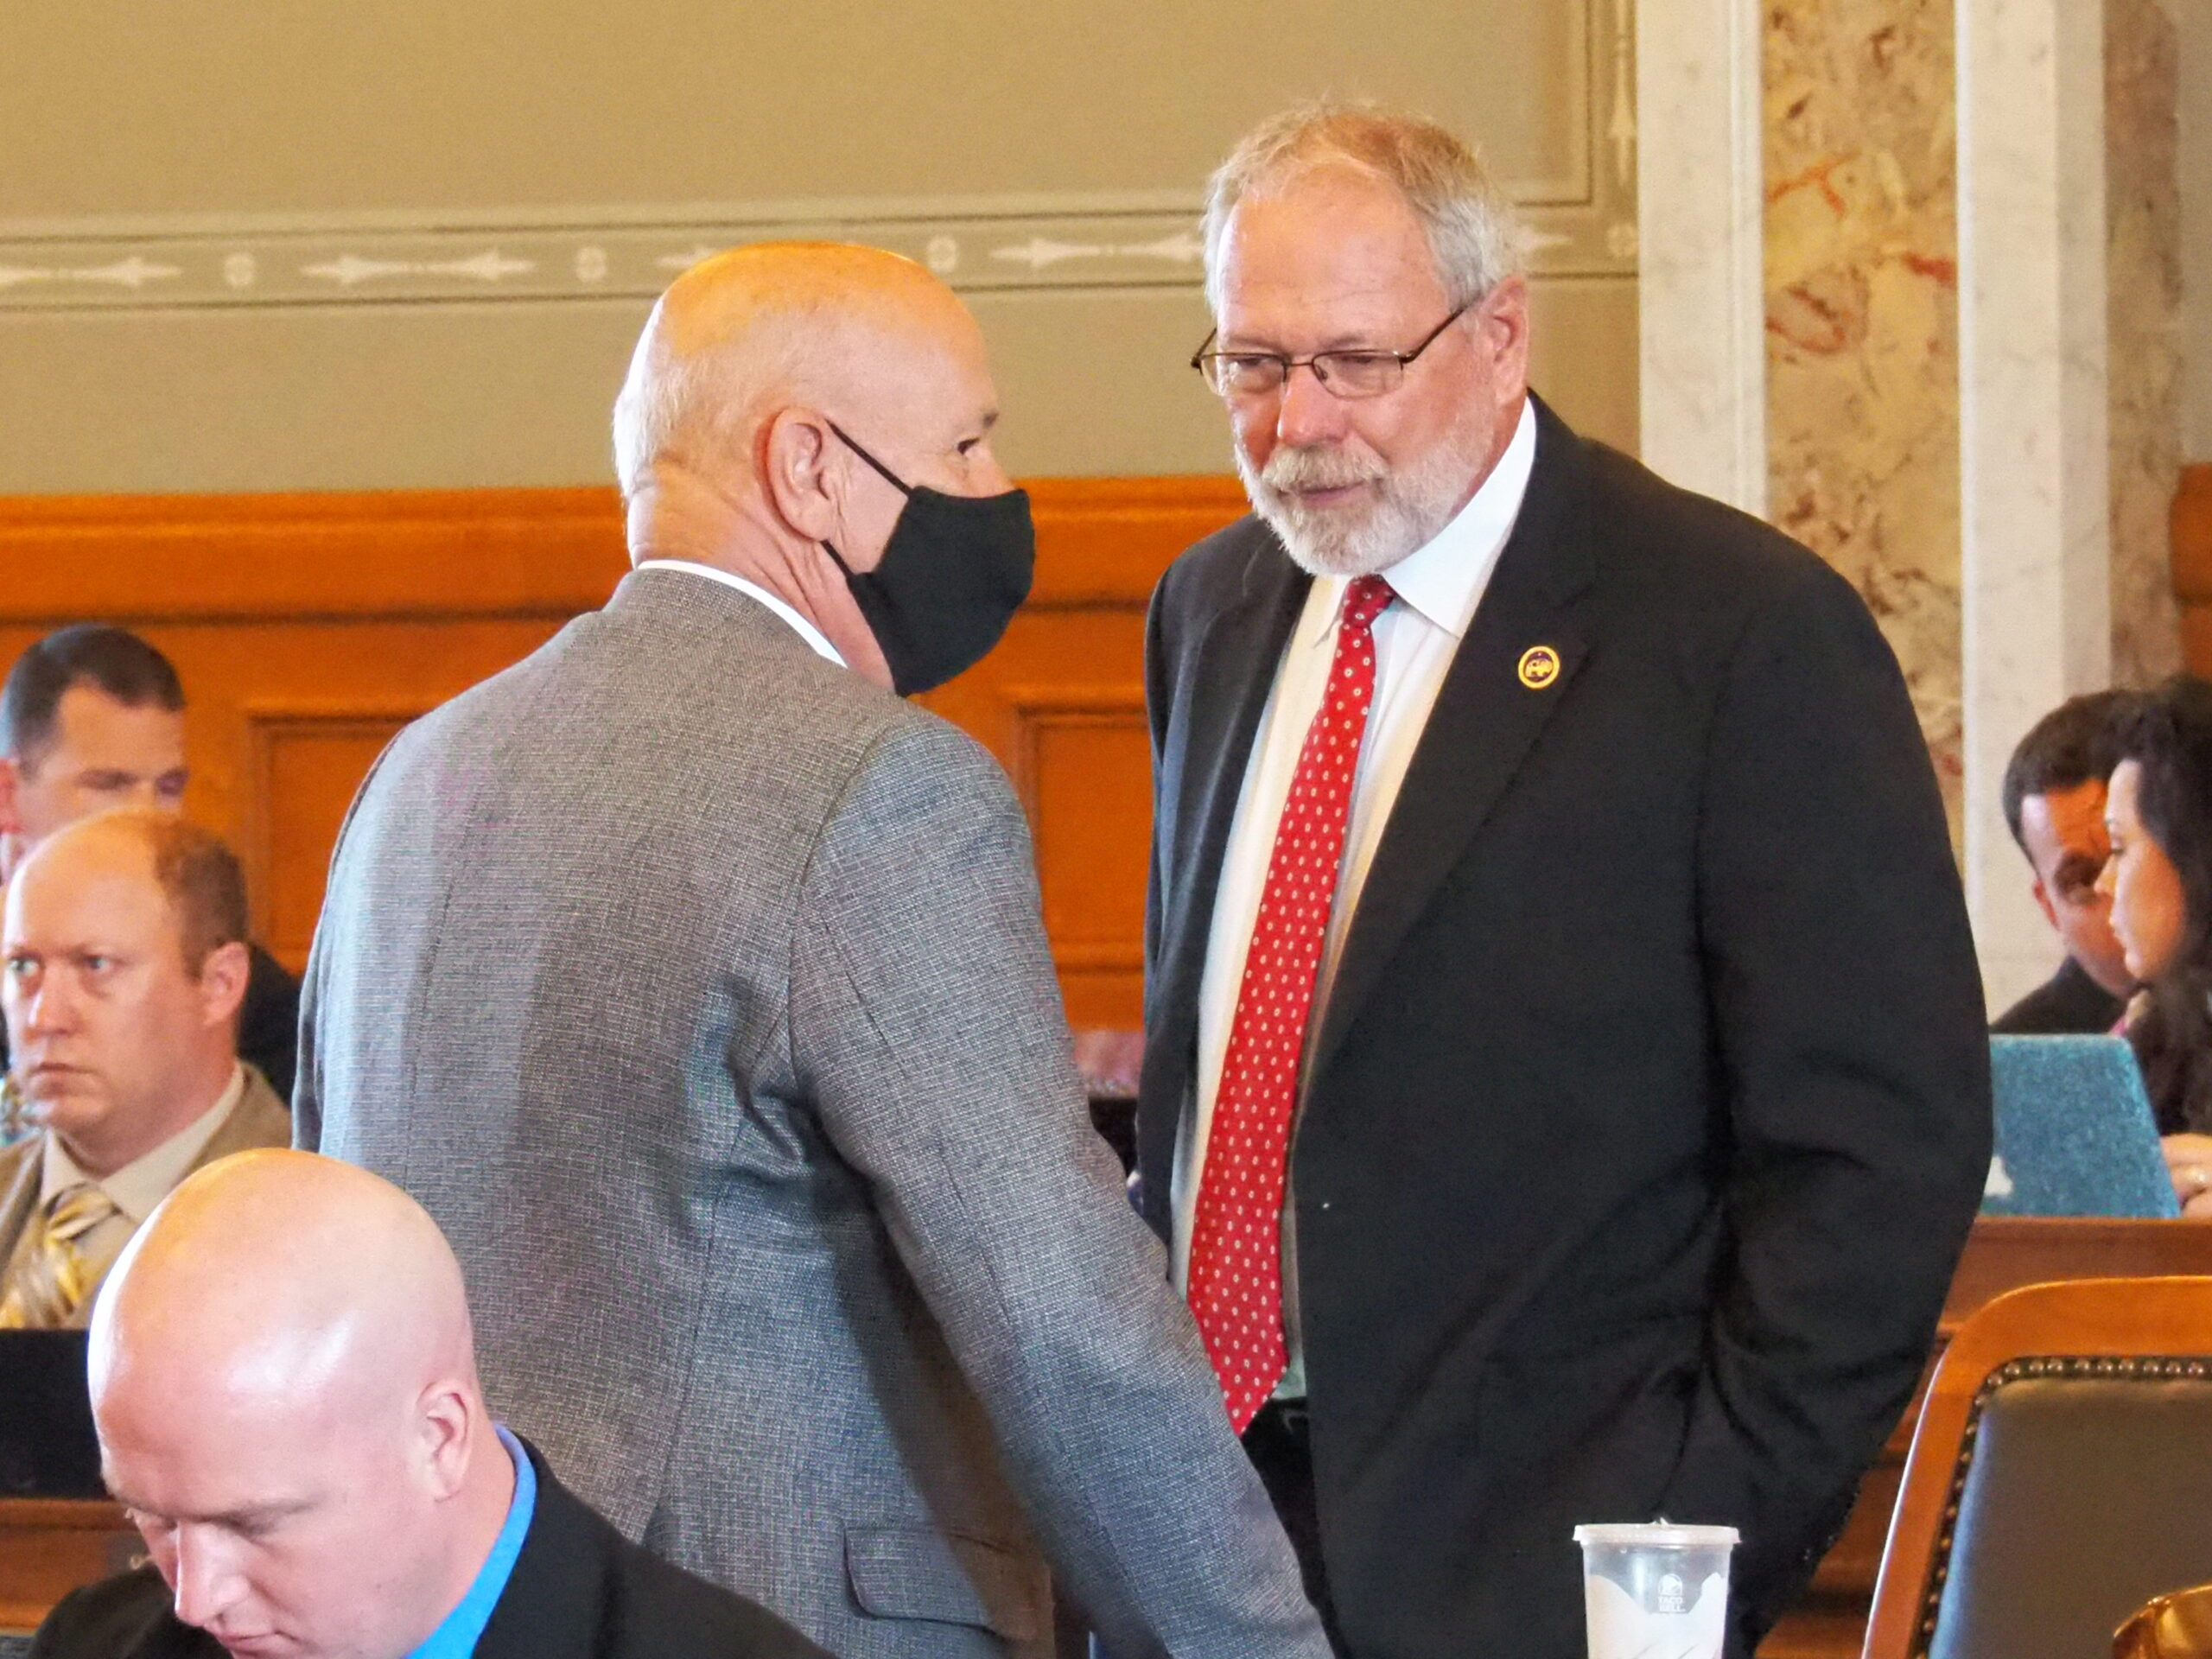 El Dorado Republican Rep. Will Carpenter, facing, led a charge in the House to override Gov. Laura Kelly's veto of $300,000 for an Andover pilot program to help women caught in human trafficking. (Tim Carpenter/Kansas Reflector)